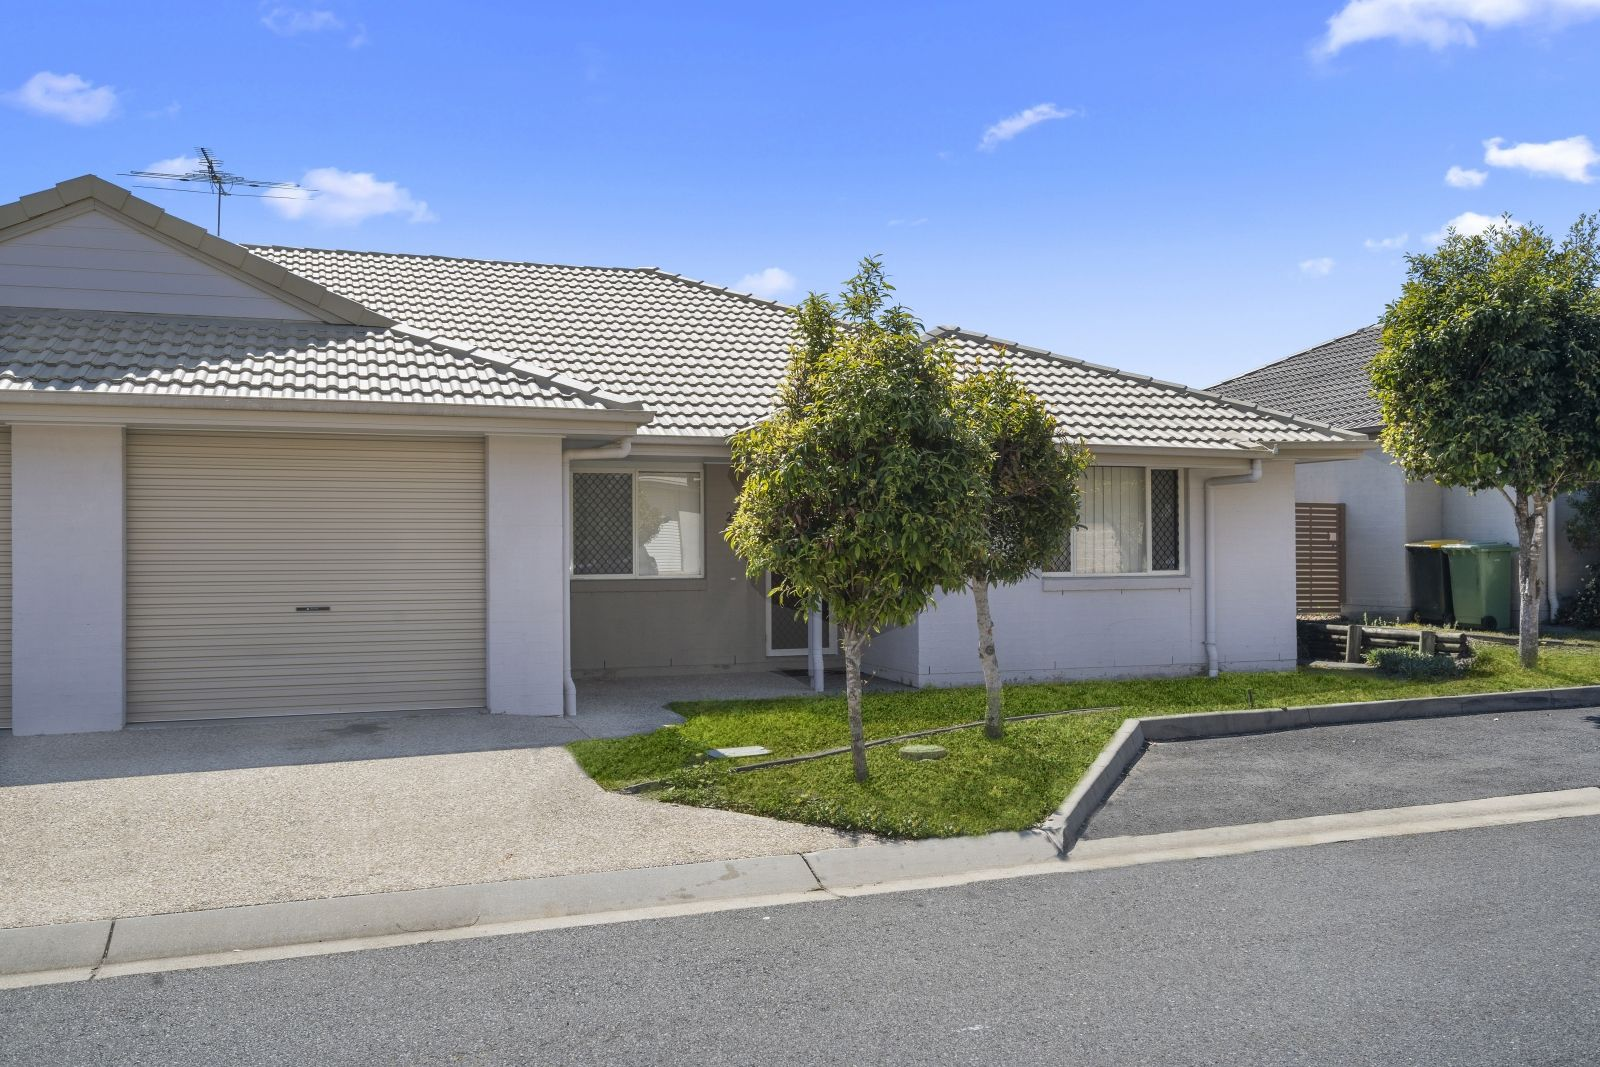 24/150 - 166 ROSEHILL DR, Burpengary QLD 4505, Image 0